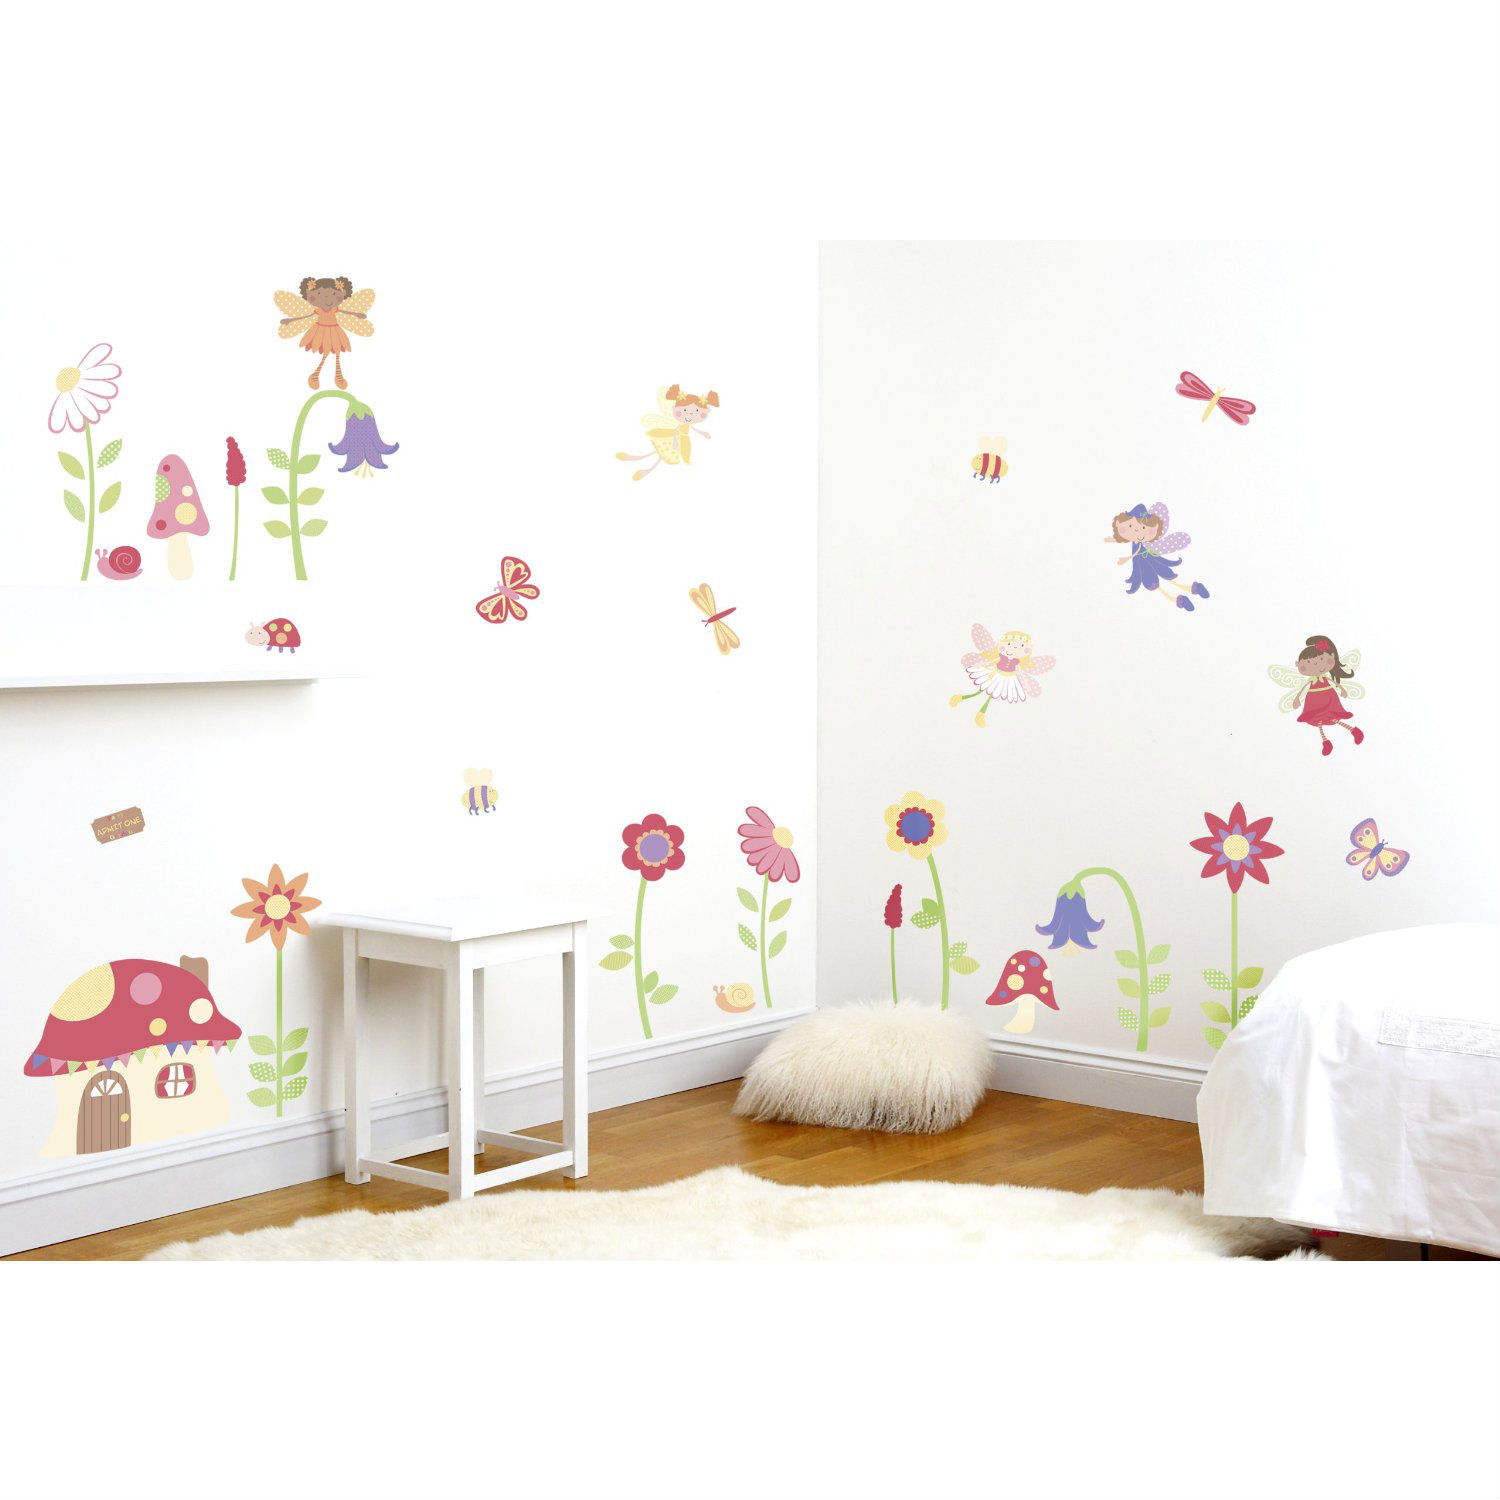 Enchanted Garden Fairies S Wall Sticker